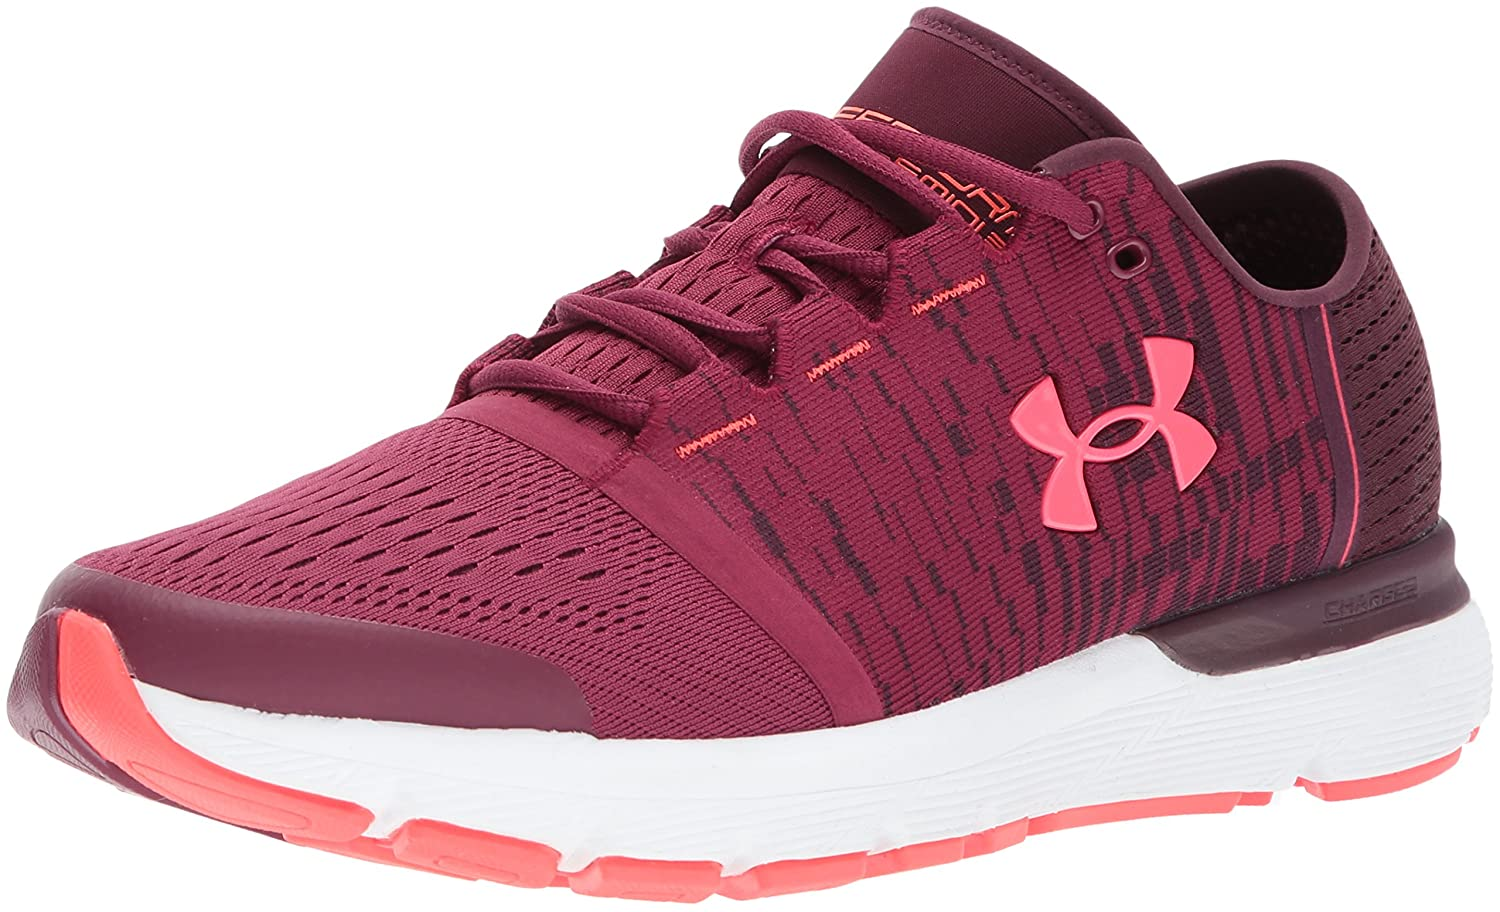 Under Armour Women's Speedform Gemini 3 Graphic Running Shoe B01N0P5IL3 7 M US|Raisin Red (500)/White